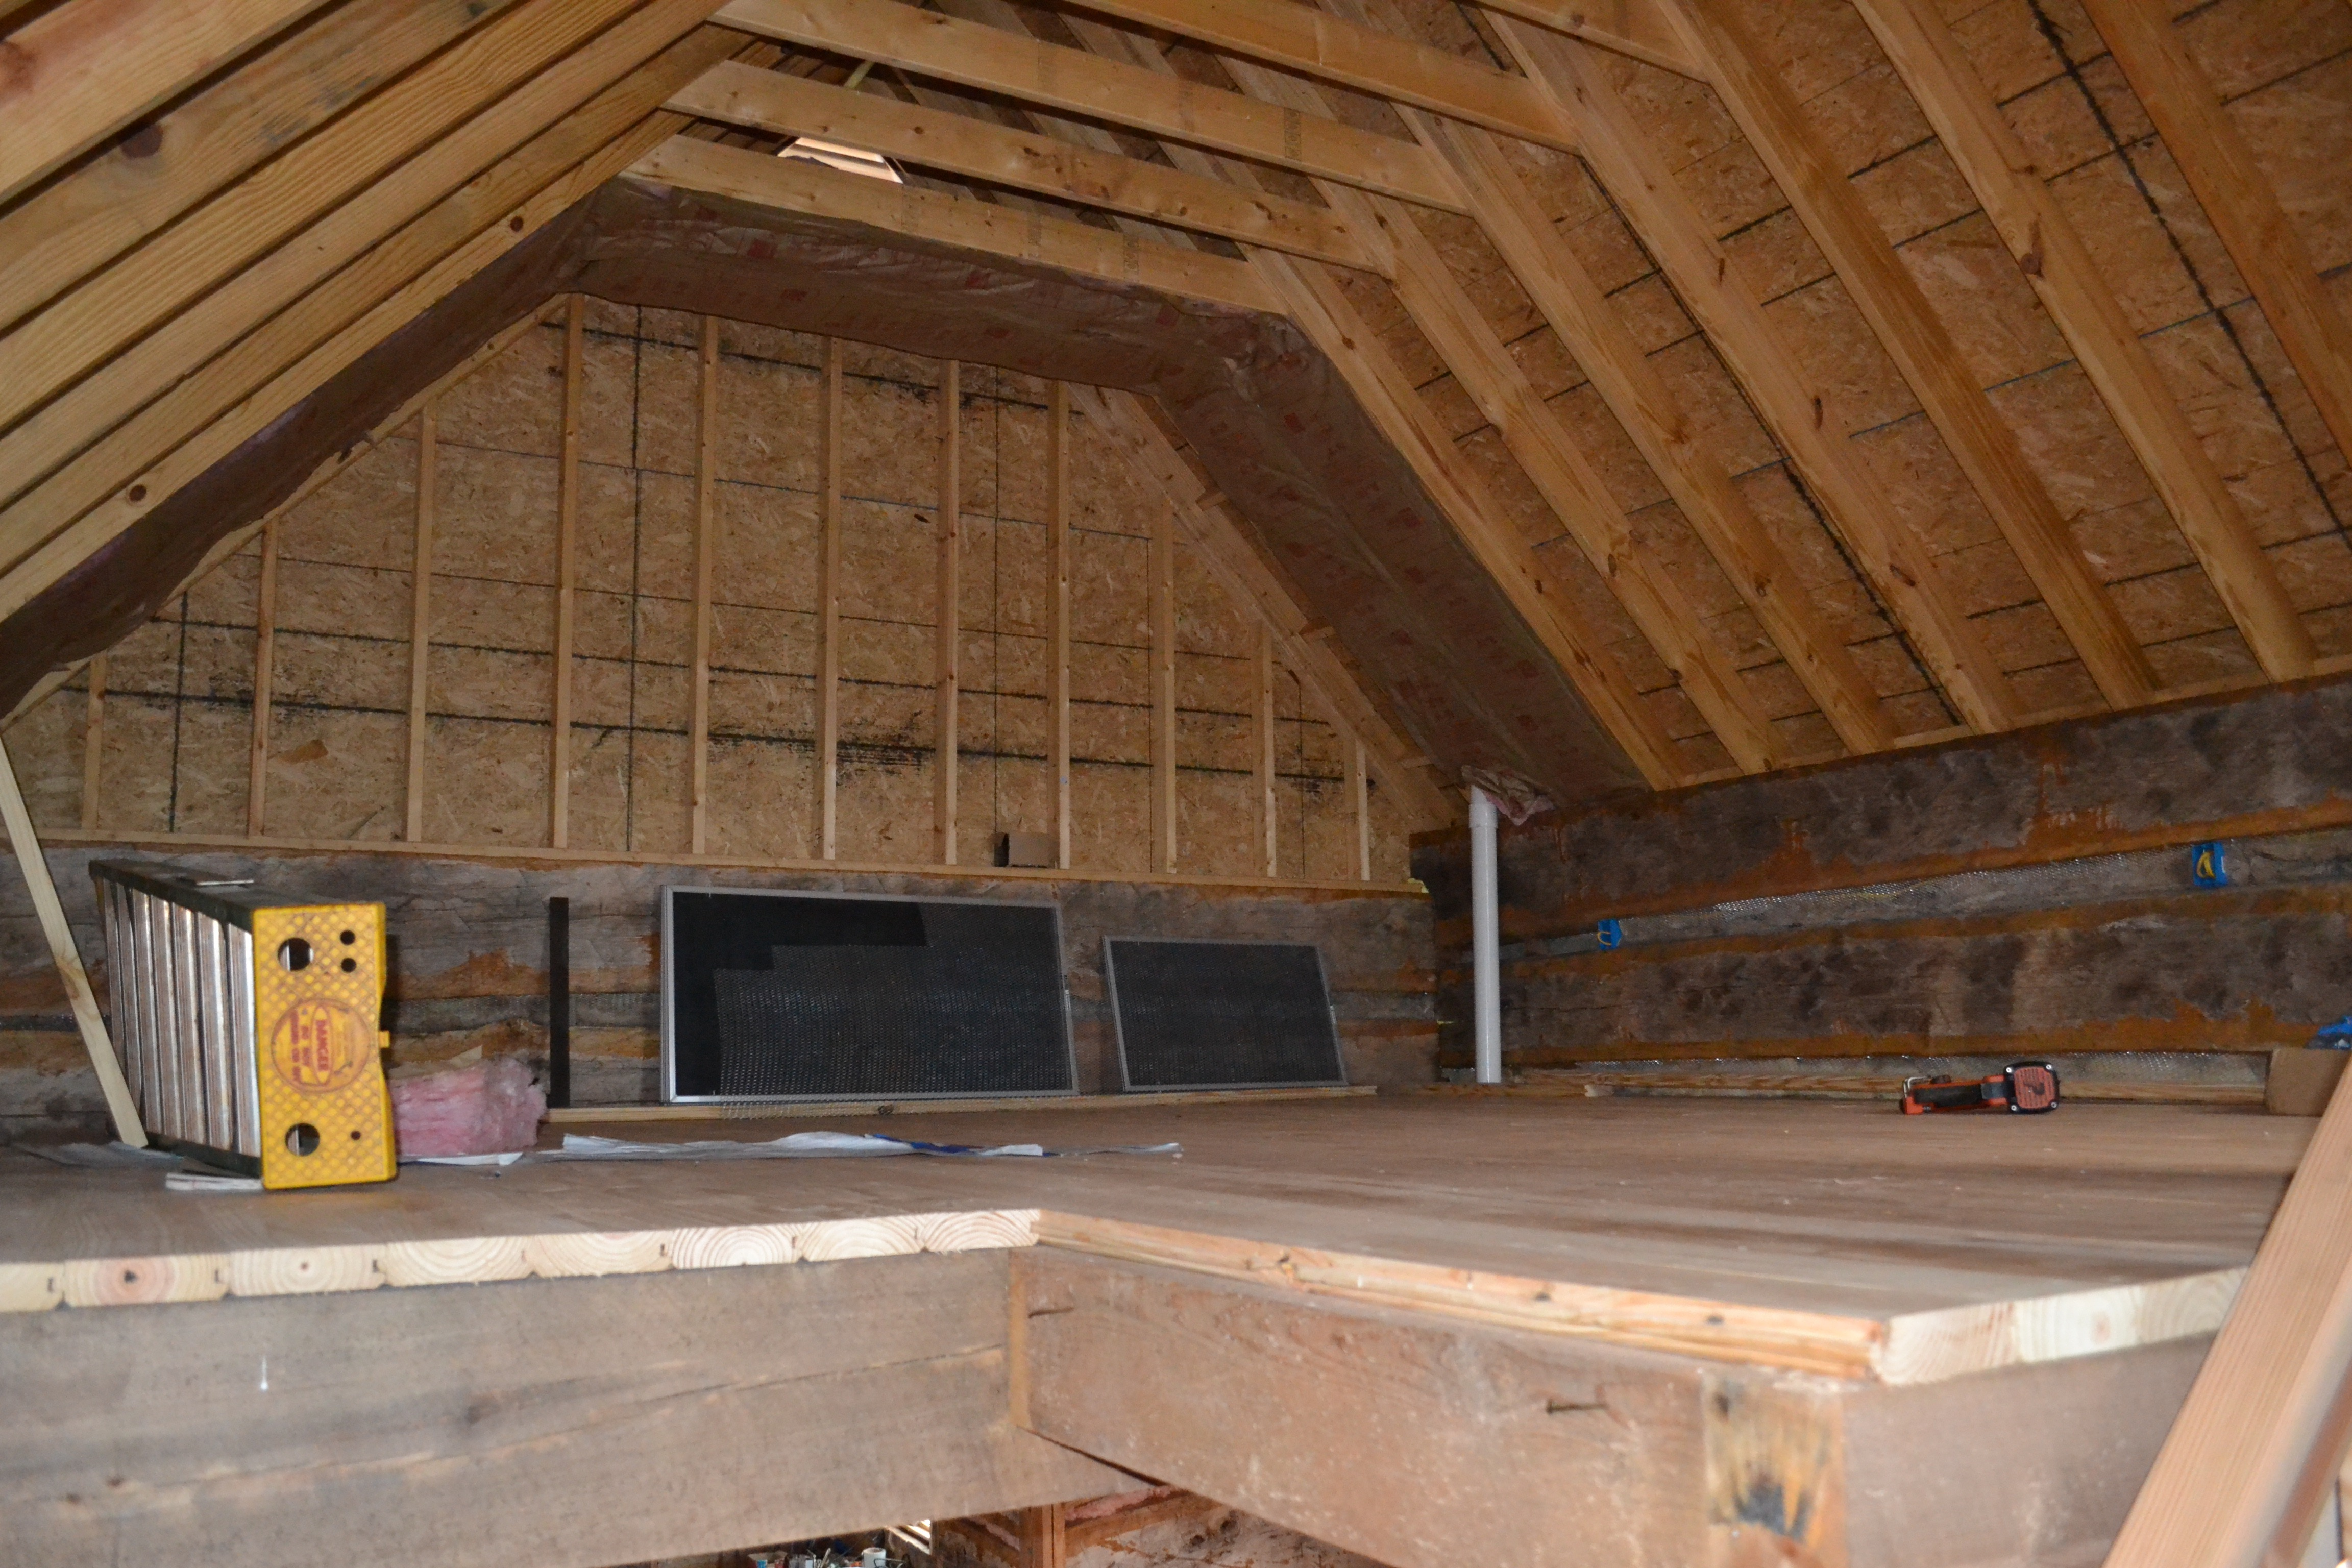 Log cabin roof framing pictures to pin on pinterest for Log cabin roof construction